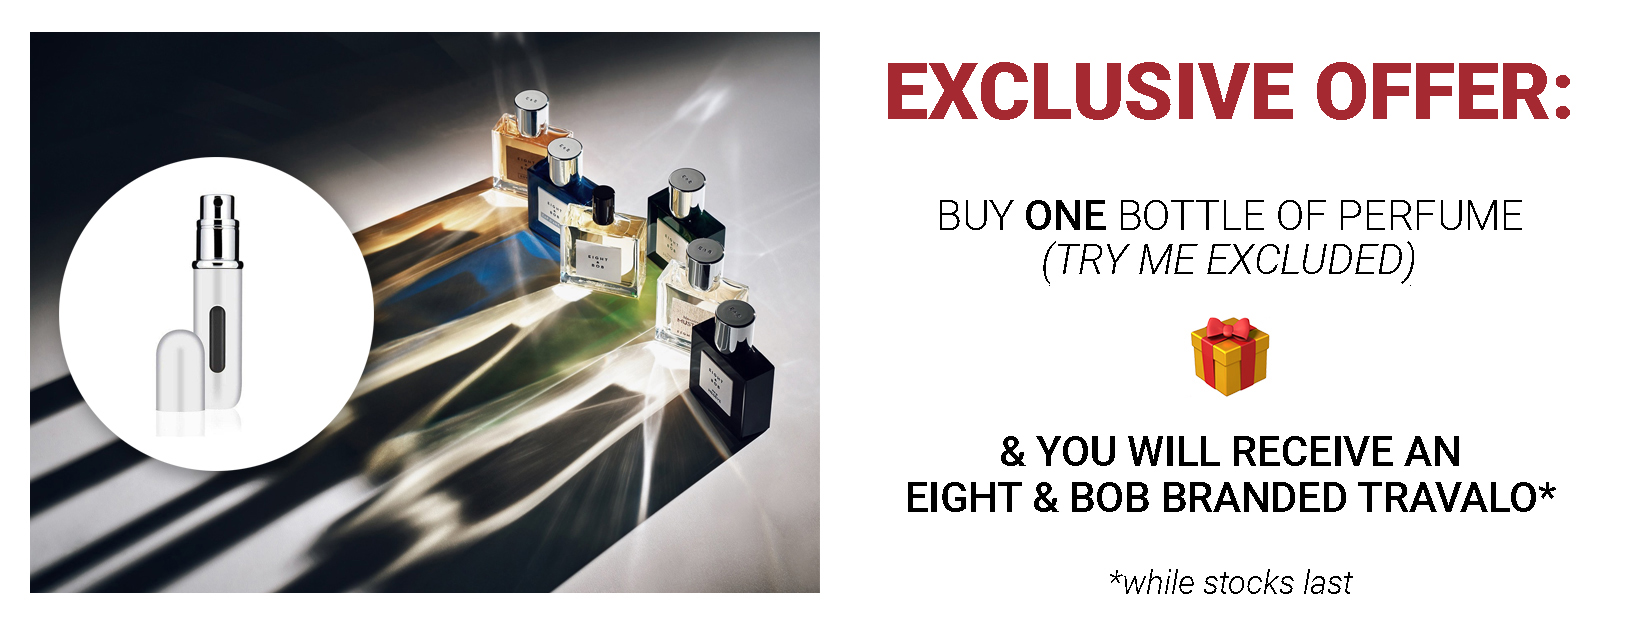 EXCLUSIVE OFFER - EIGHT AND BOB.jpg